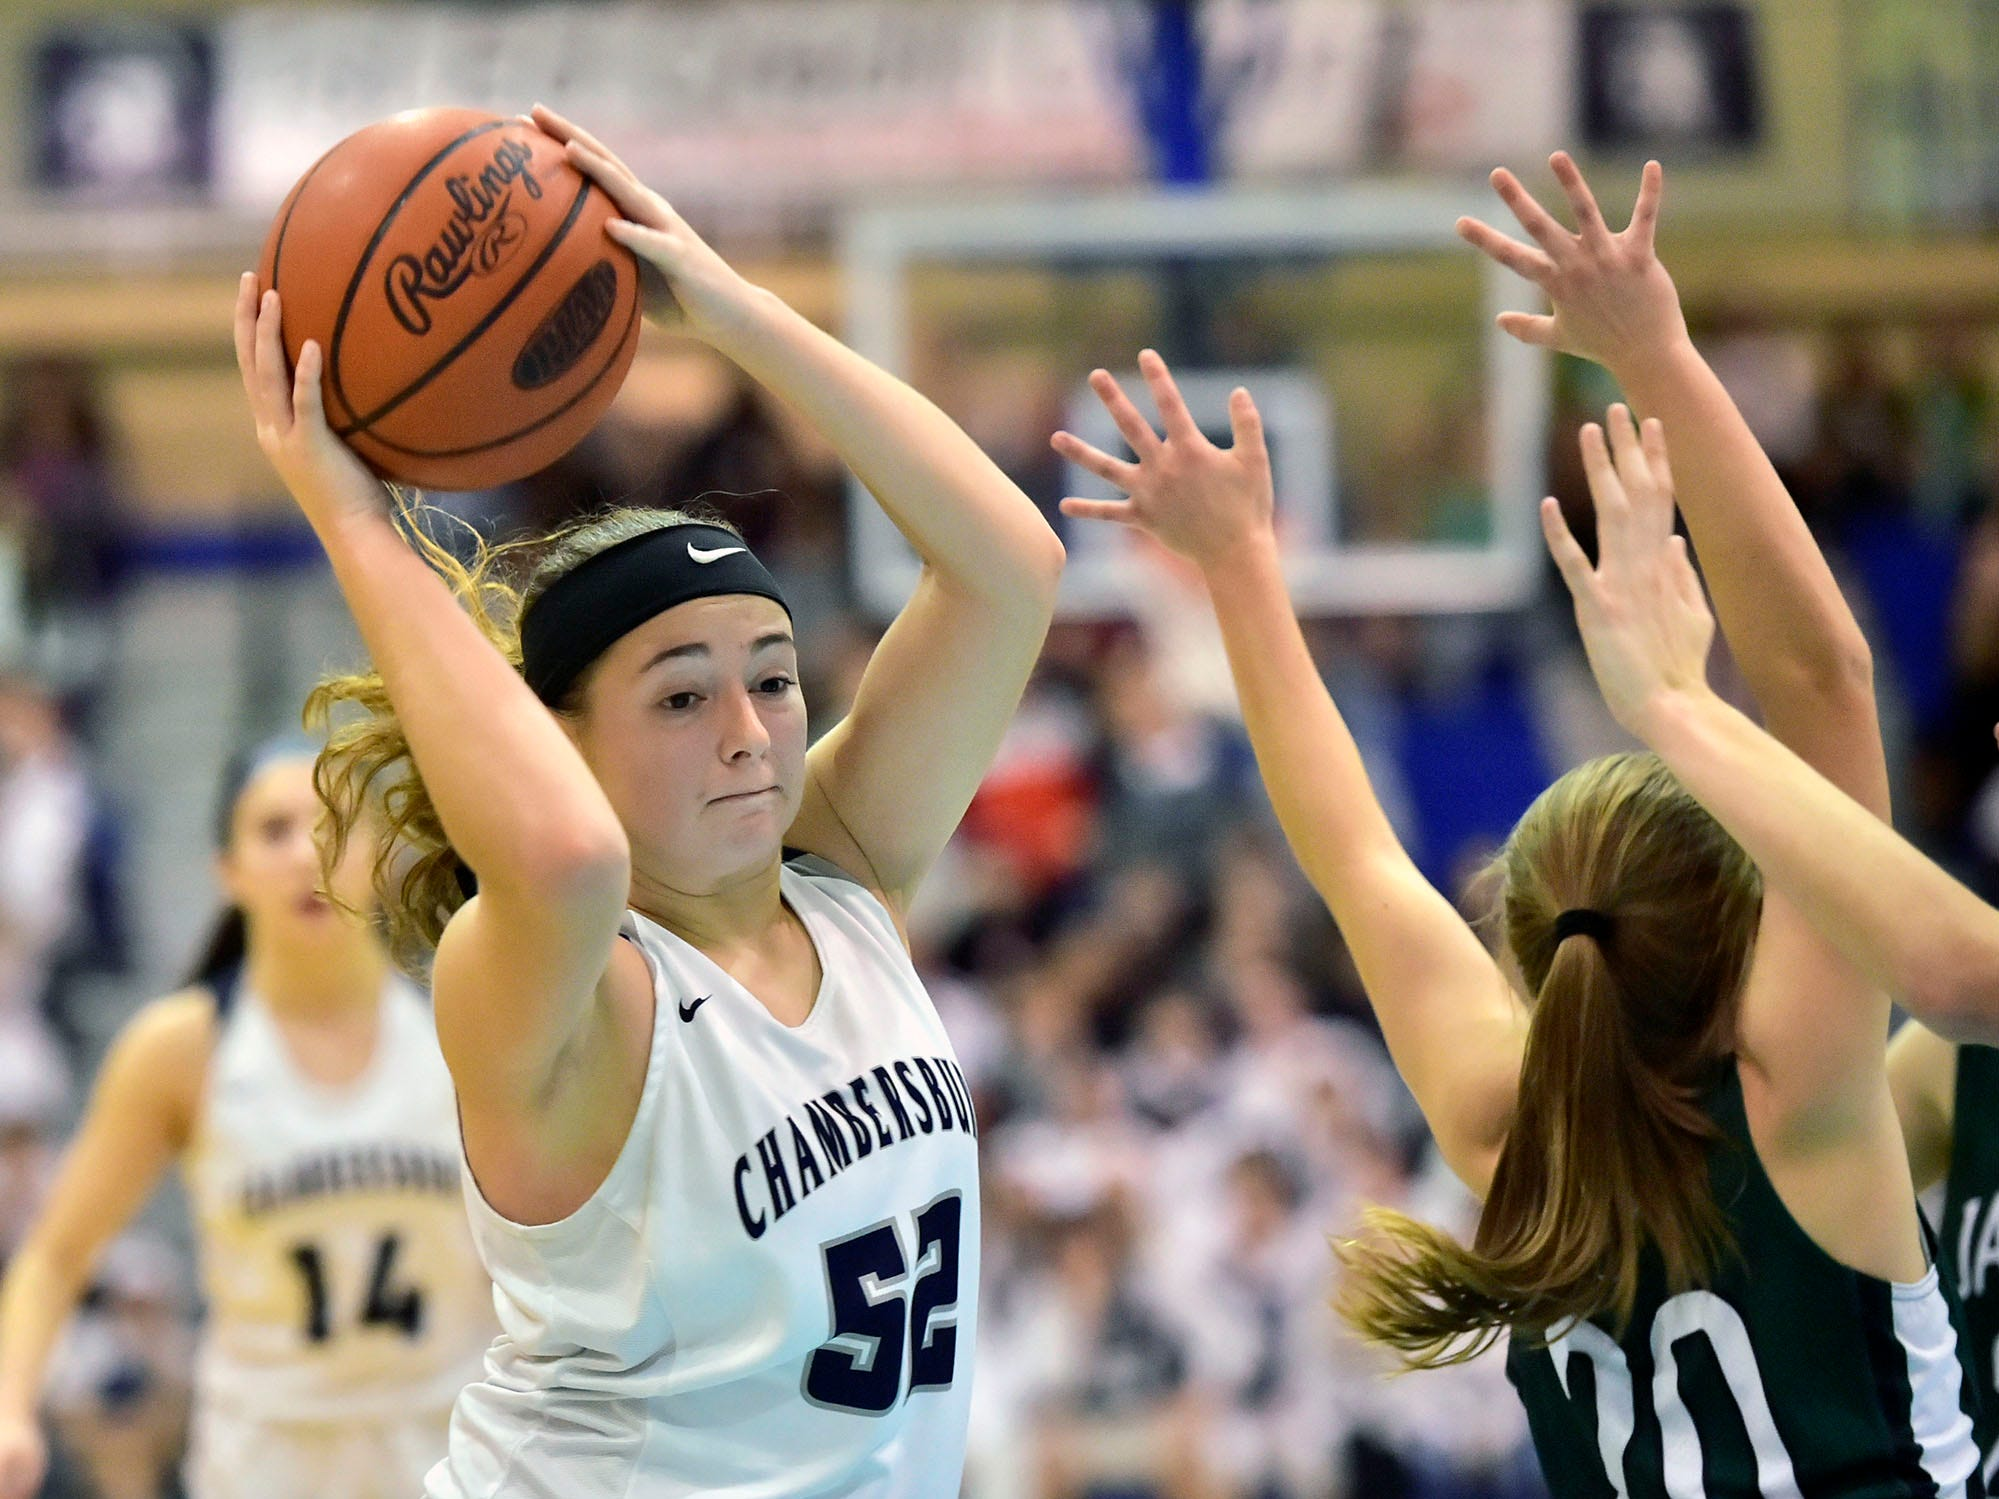 Chambersburg's Marlee Wrights (52) secures a rebound against James Buchanan during the Franklin County Tip-Off Tournament, Friday, Dec. 7, 2018.